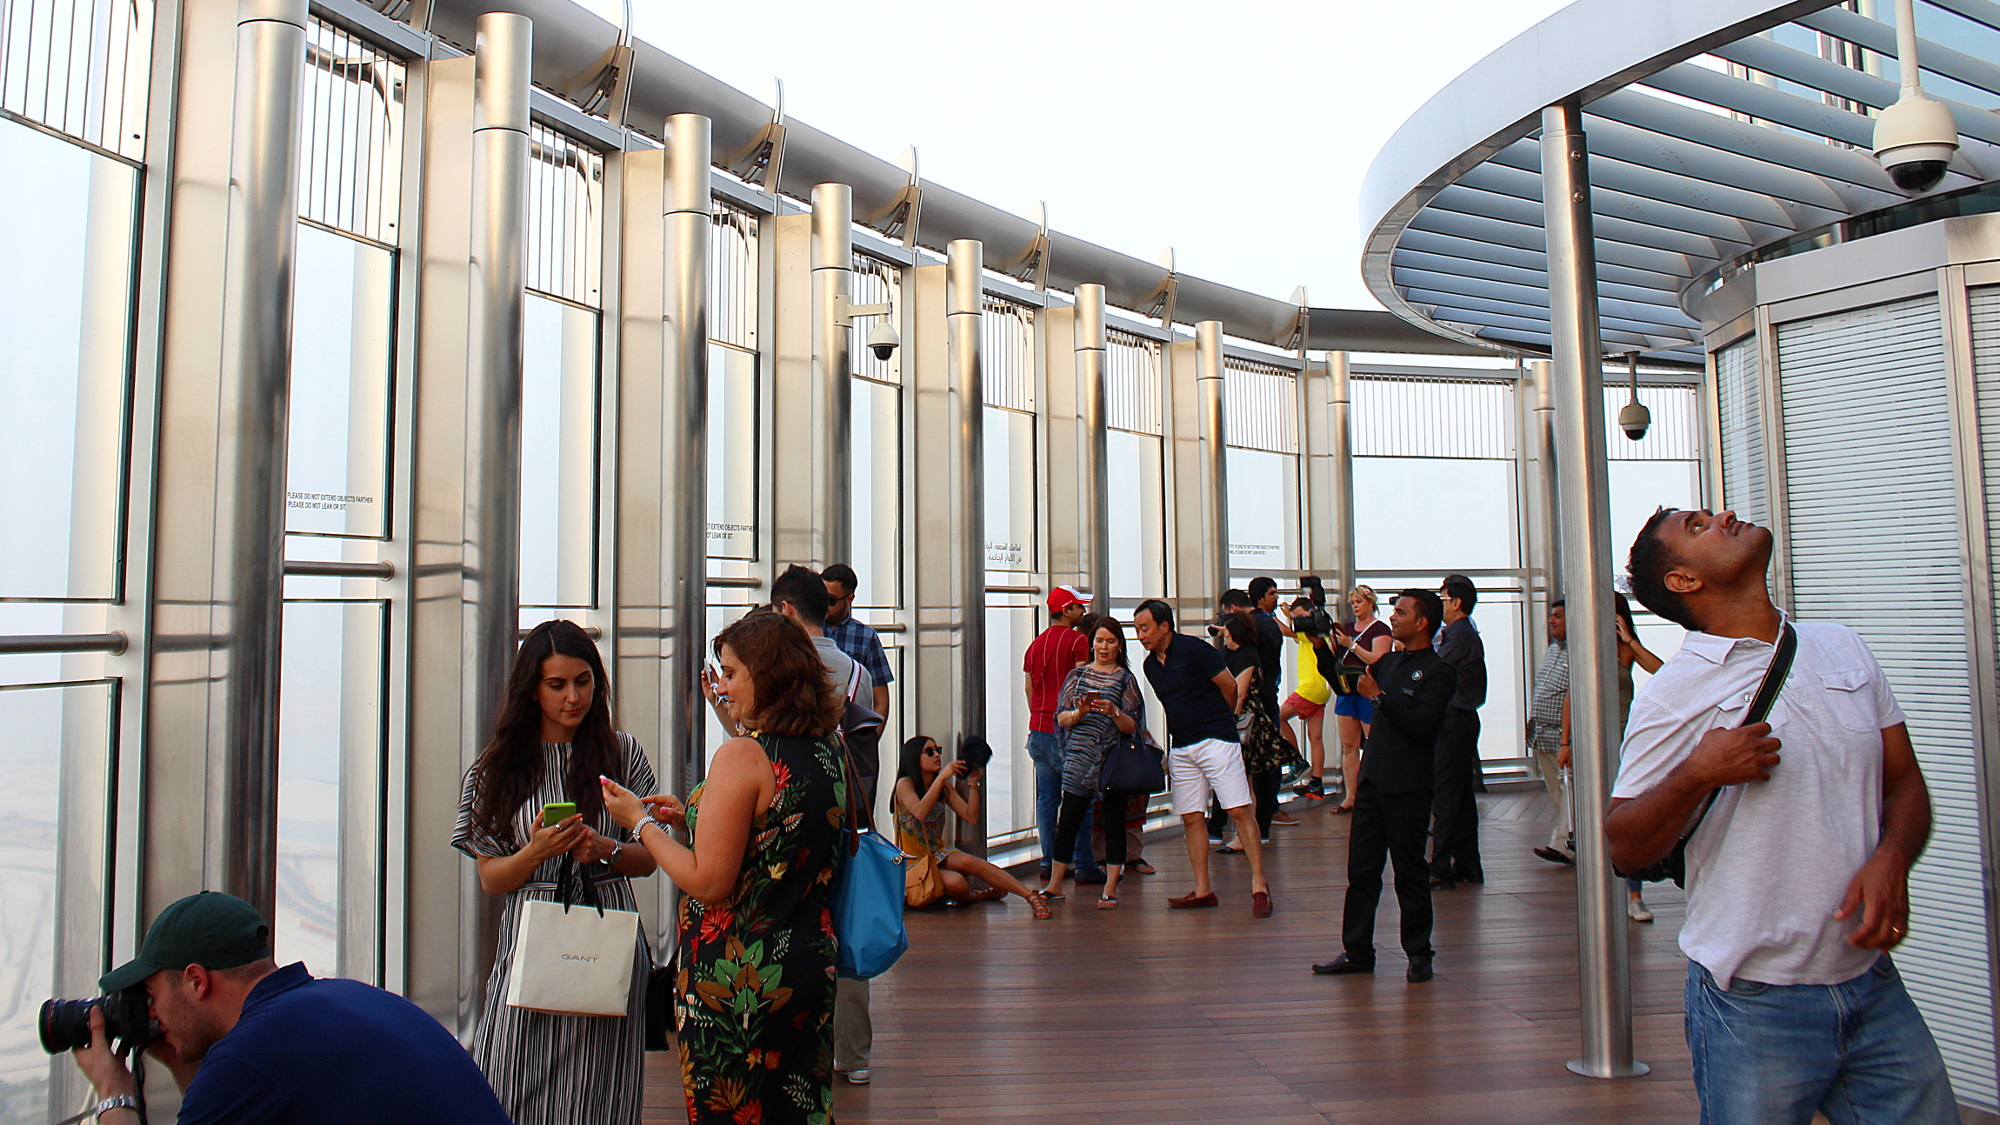 Outside at the Burj Khalifa observation deck.